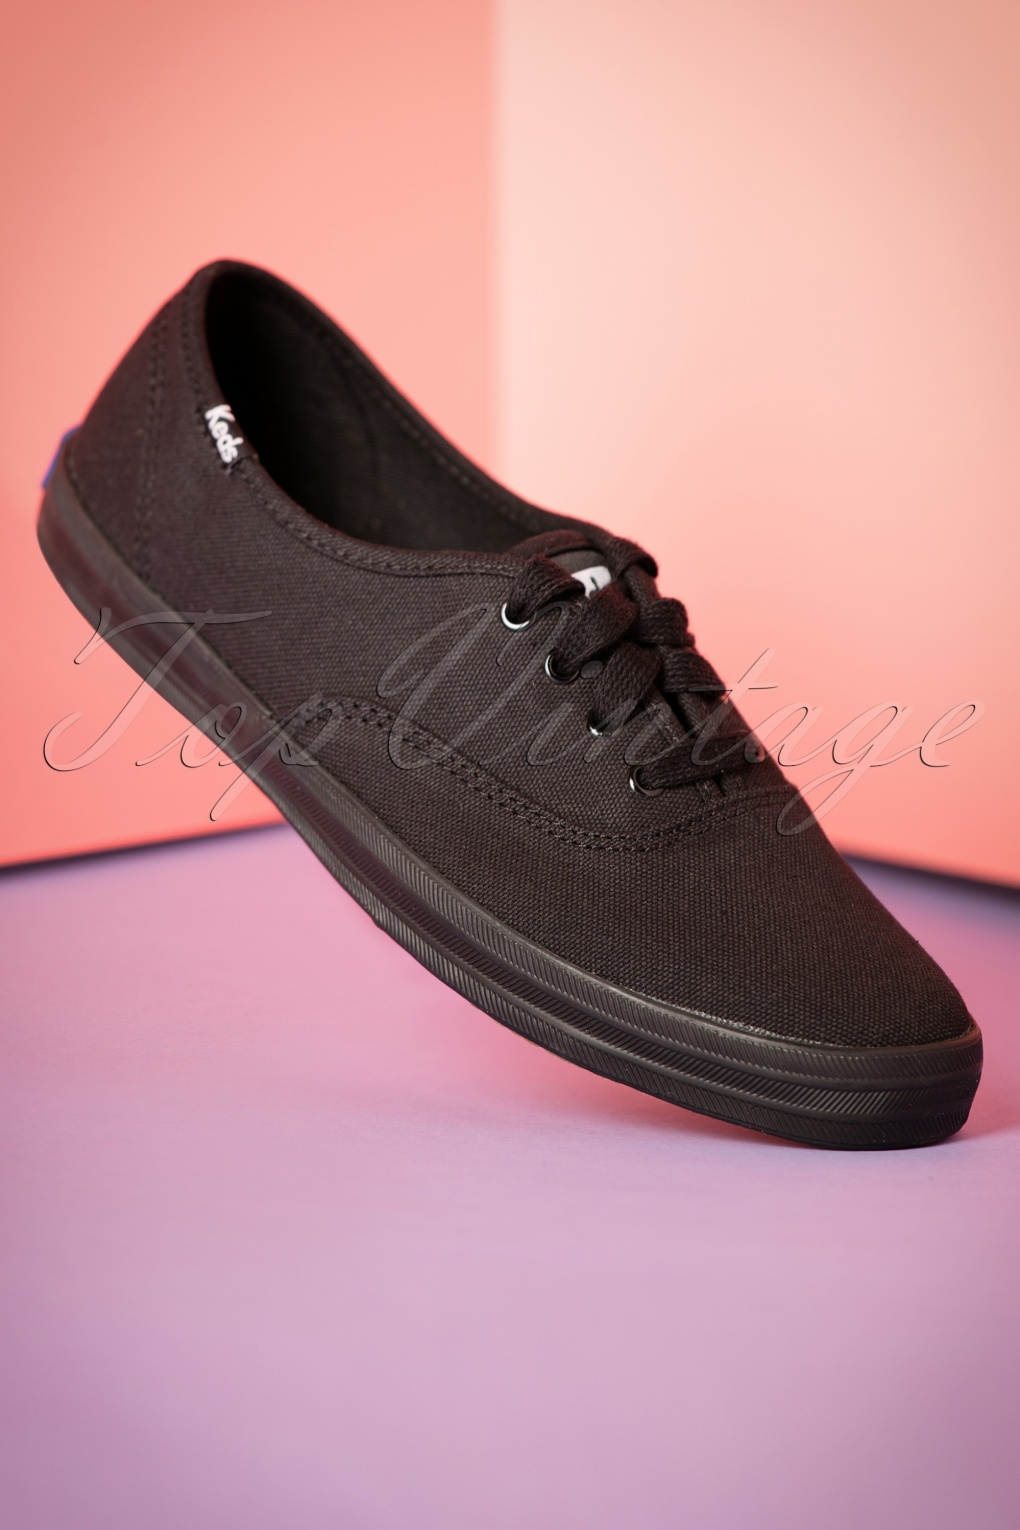 Retro Vintage Flats and Low Heel Shoes 50s Champion Core Text Sneakers in All Black £52.49 AT vintagedancer.com